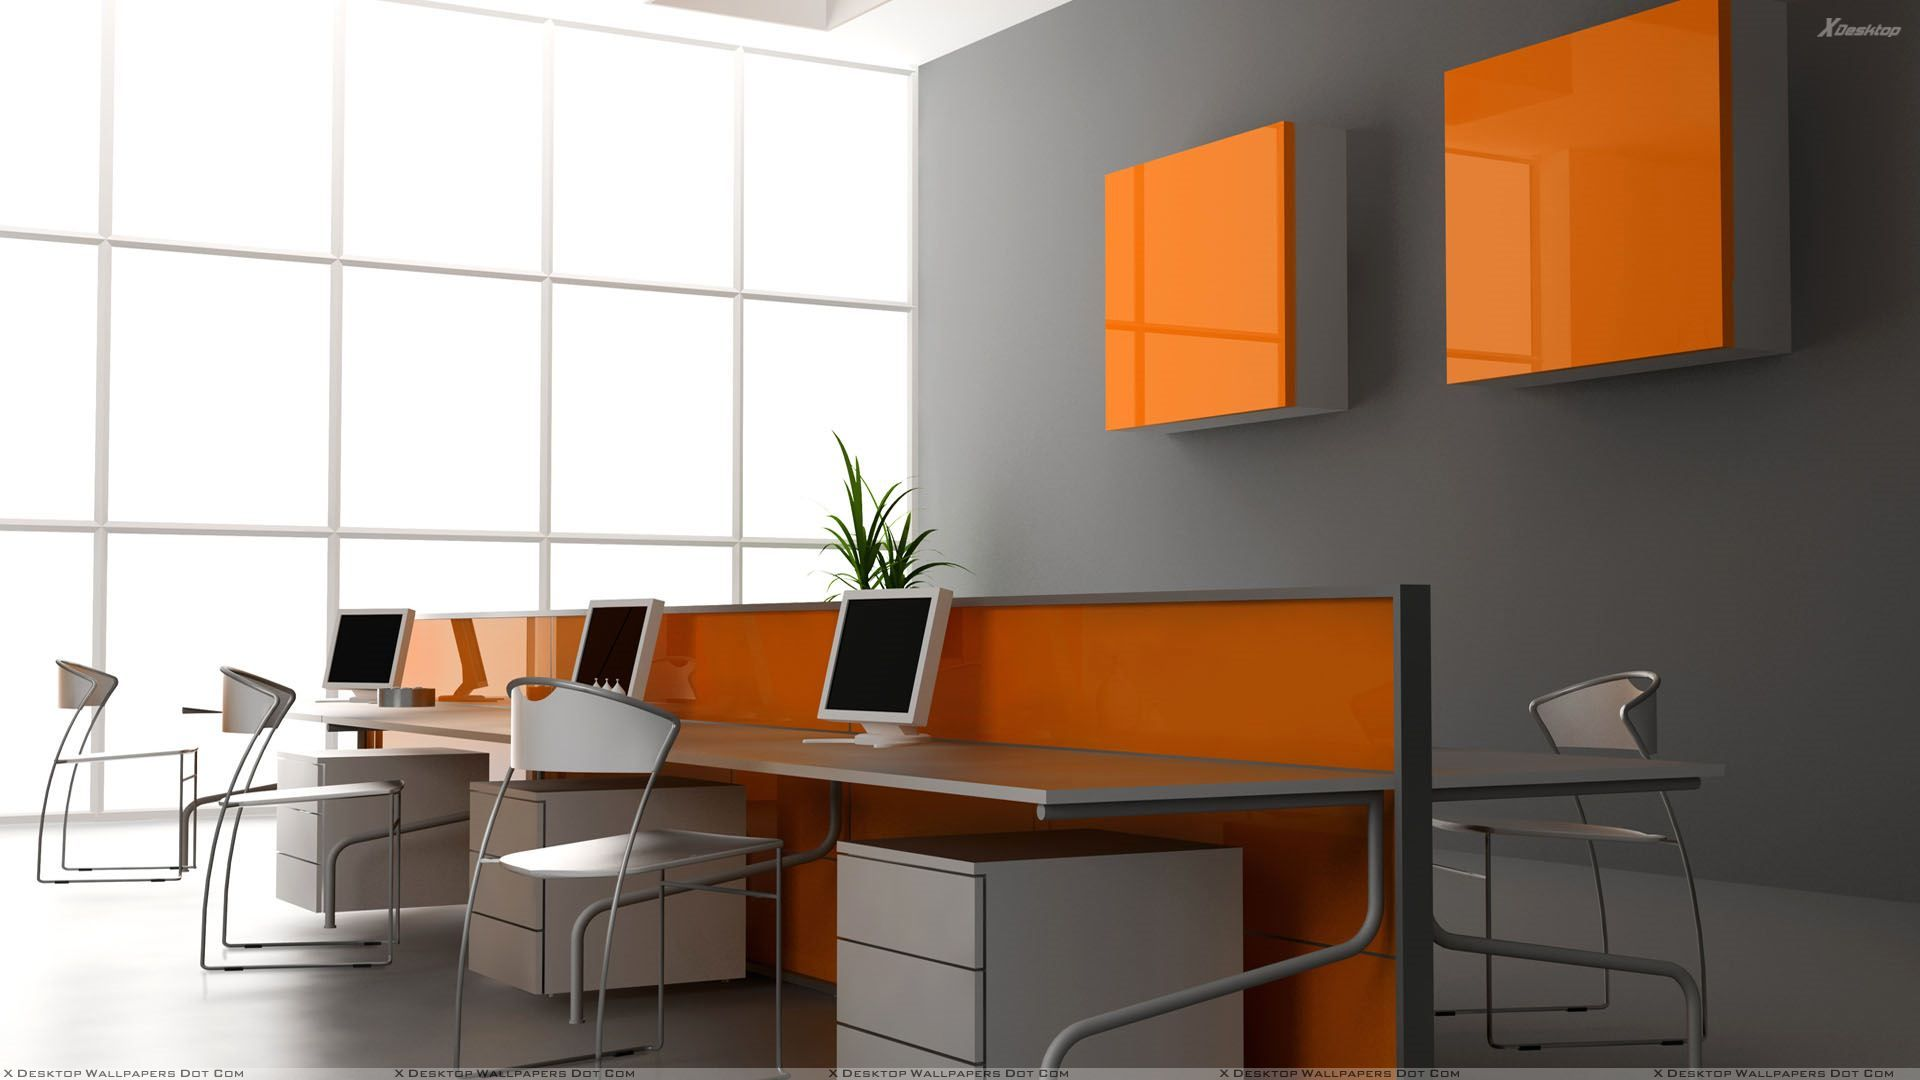 Color art office interiors - Marvellous Modern Office Interior Design Applying Grey Also White And Orange Room Color Furnished With Elongated Desk Completed With Computer Sets And Chair